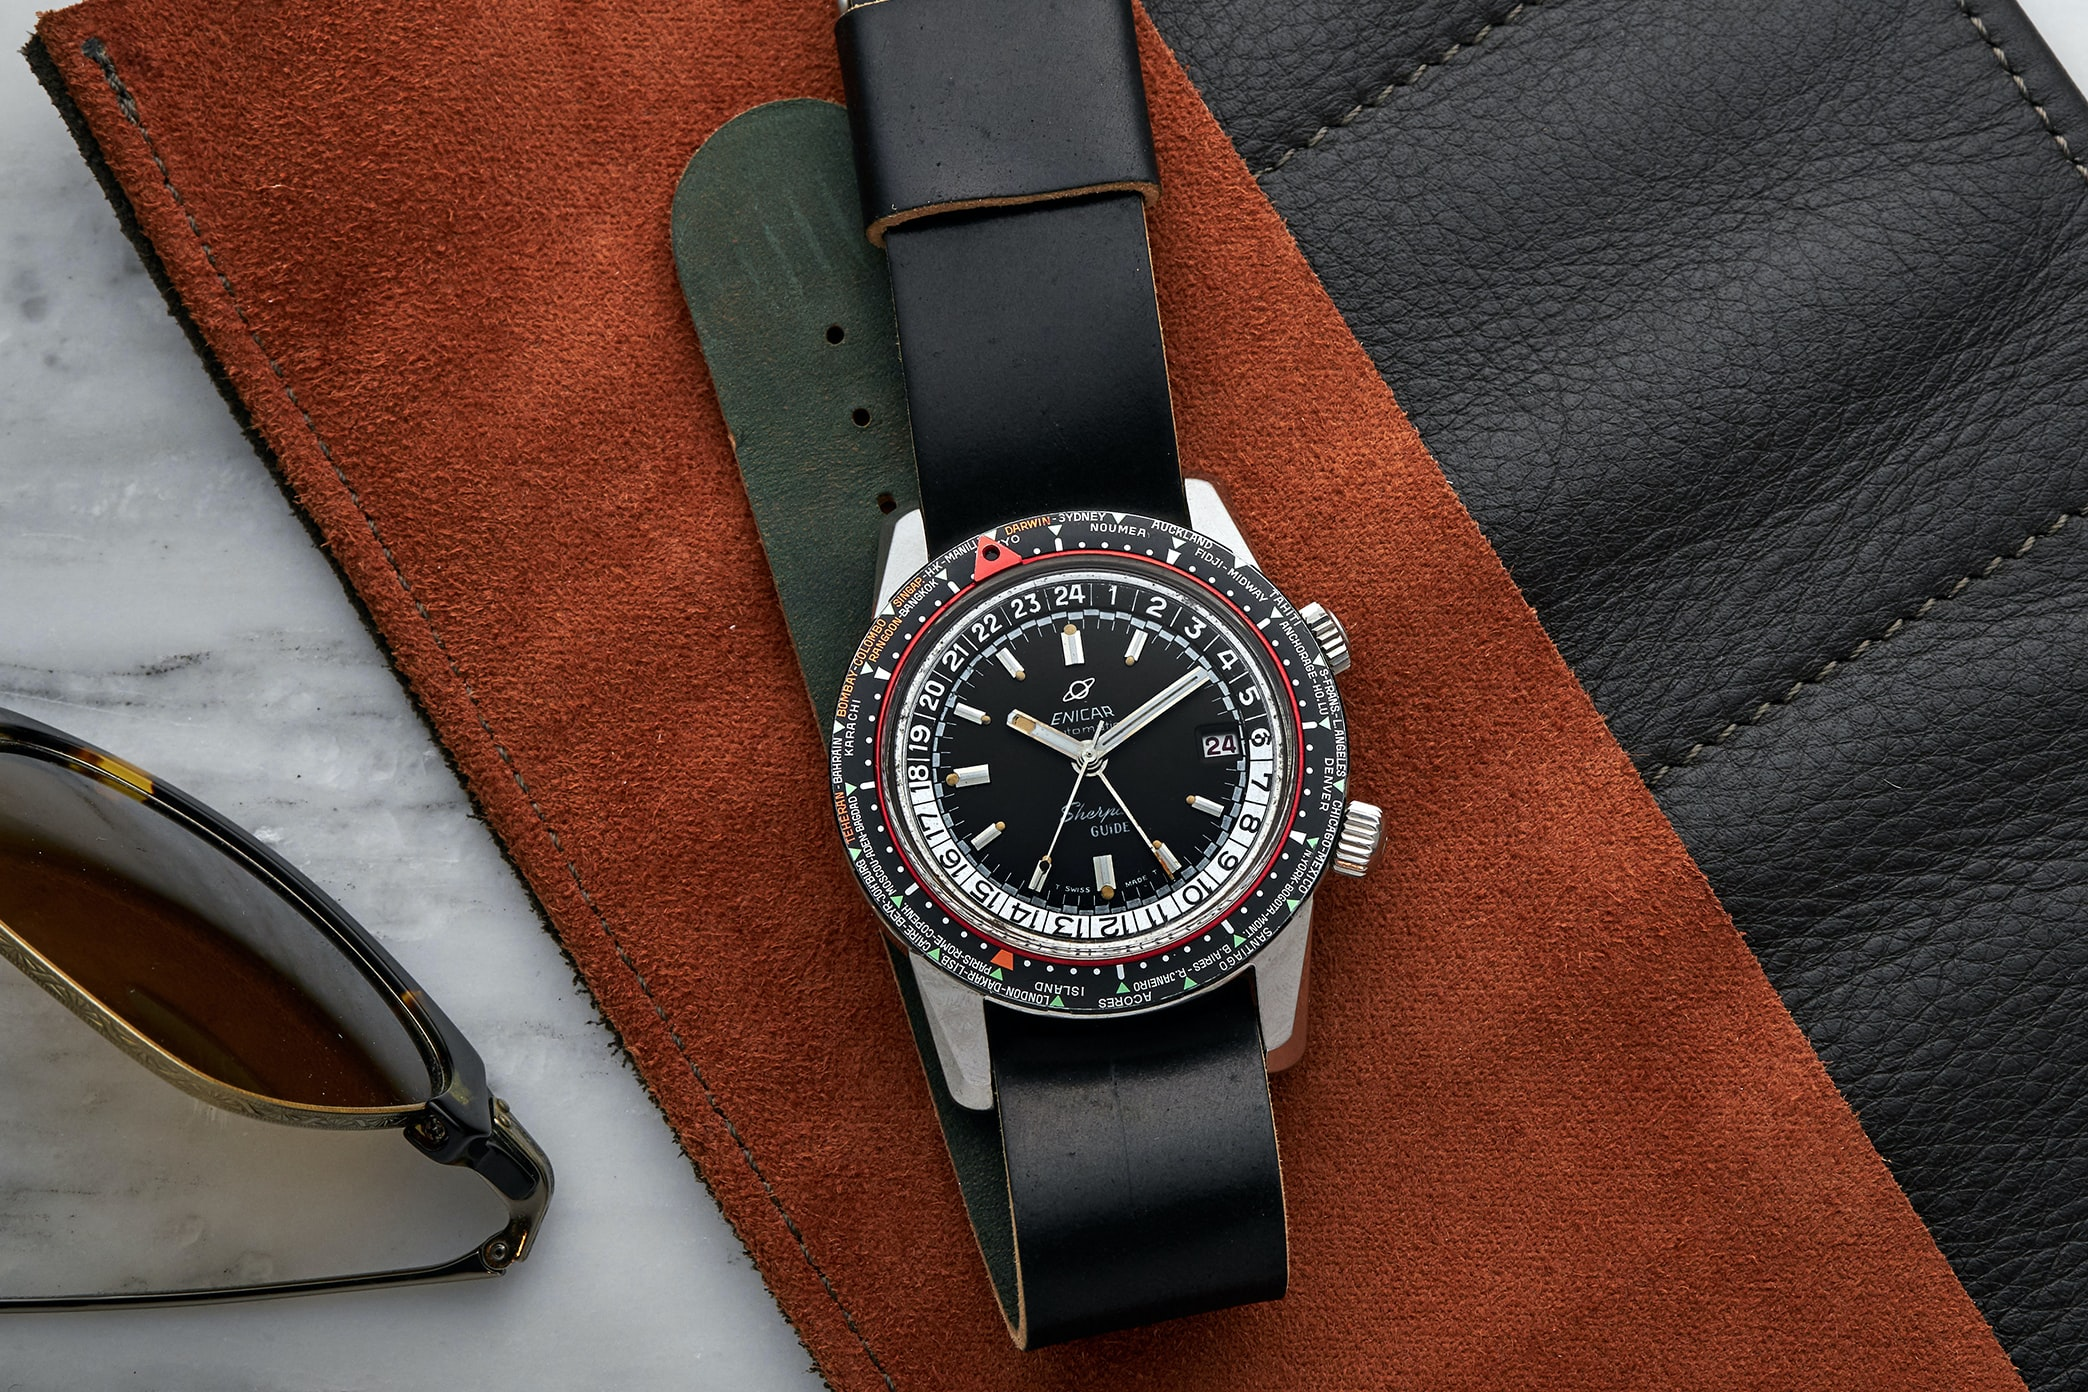 In The Shop – Vintage Watches: A 1984 Rolex GMT-Master II 16760 'Fat Lady,' A 1970s Breitling Chrono-Matic 7651, And A 1972 Rolex Day-Date Reference 1803 823 EnecarSherpaguide Lifestyle